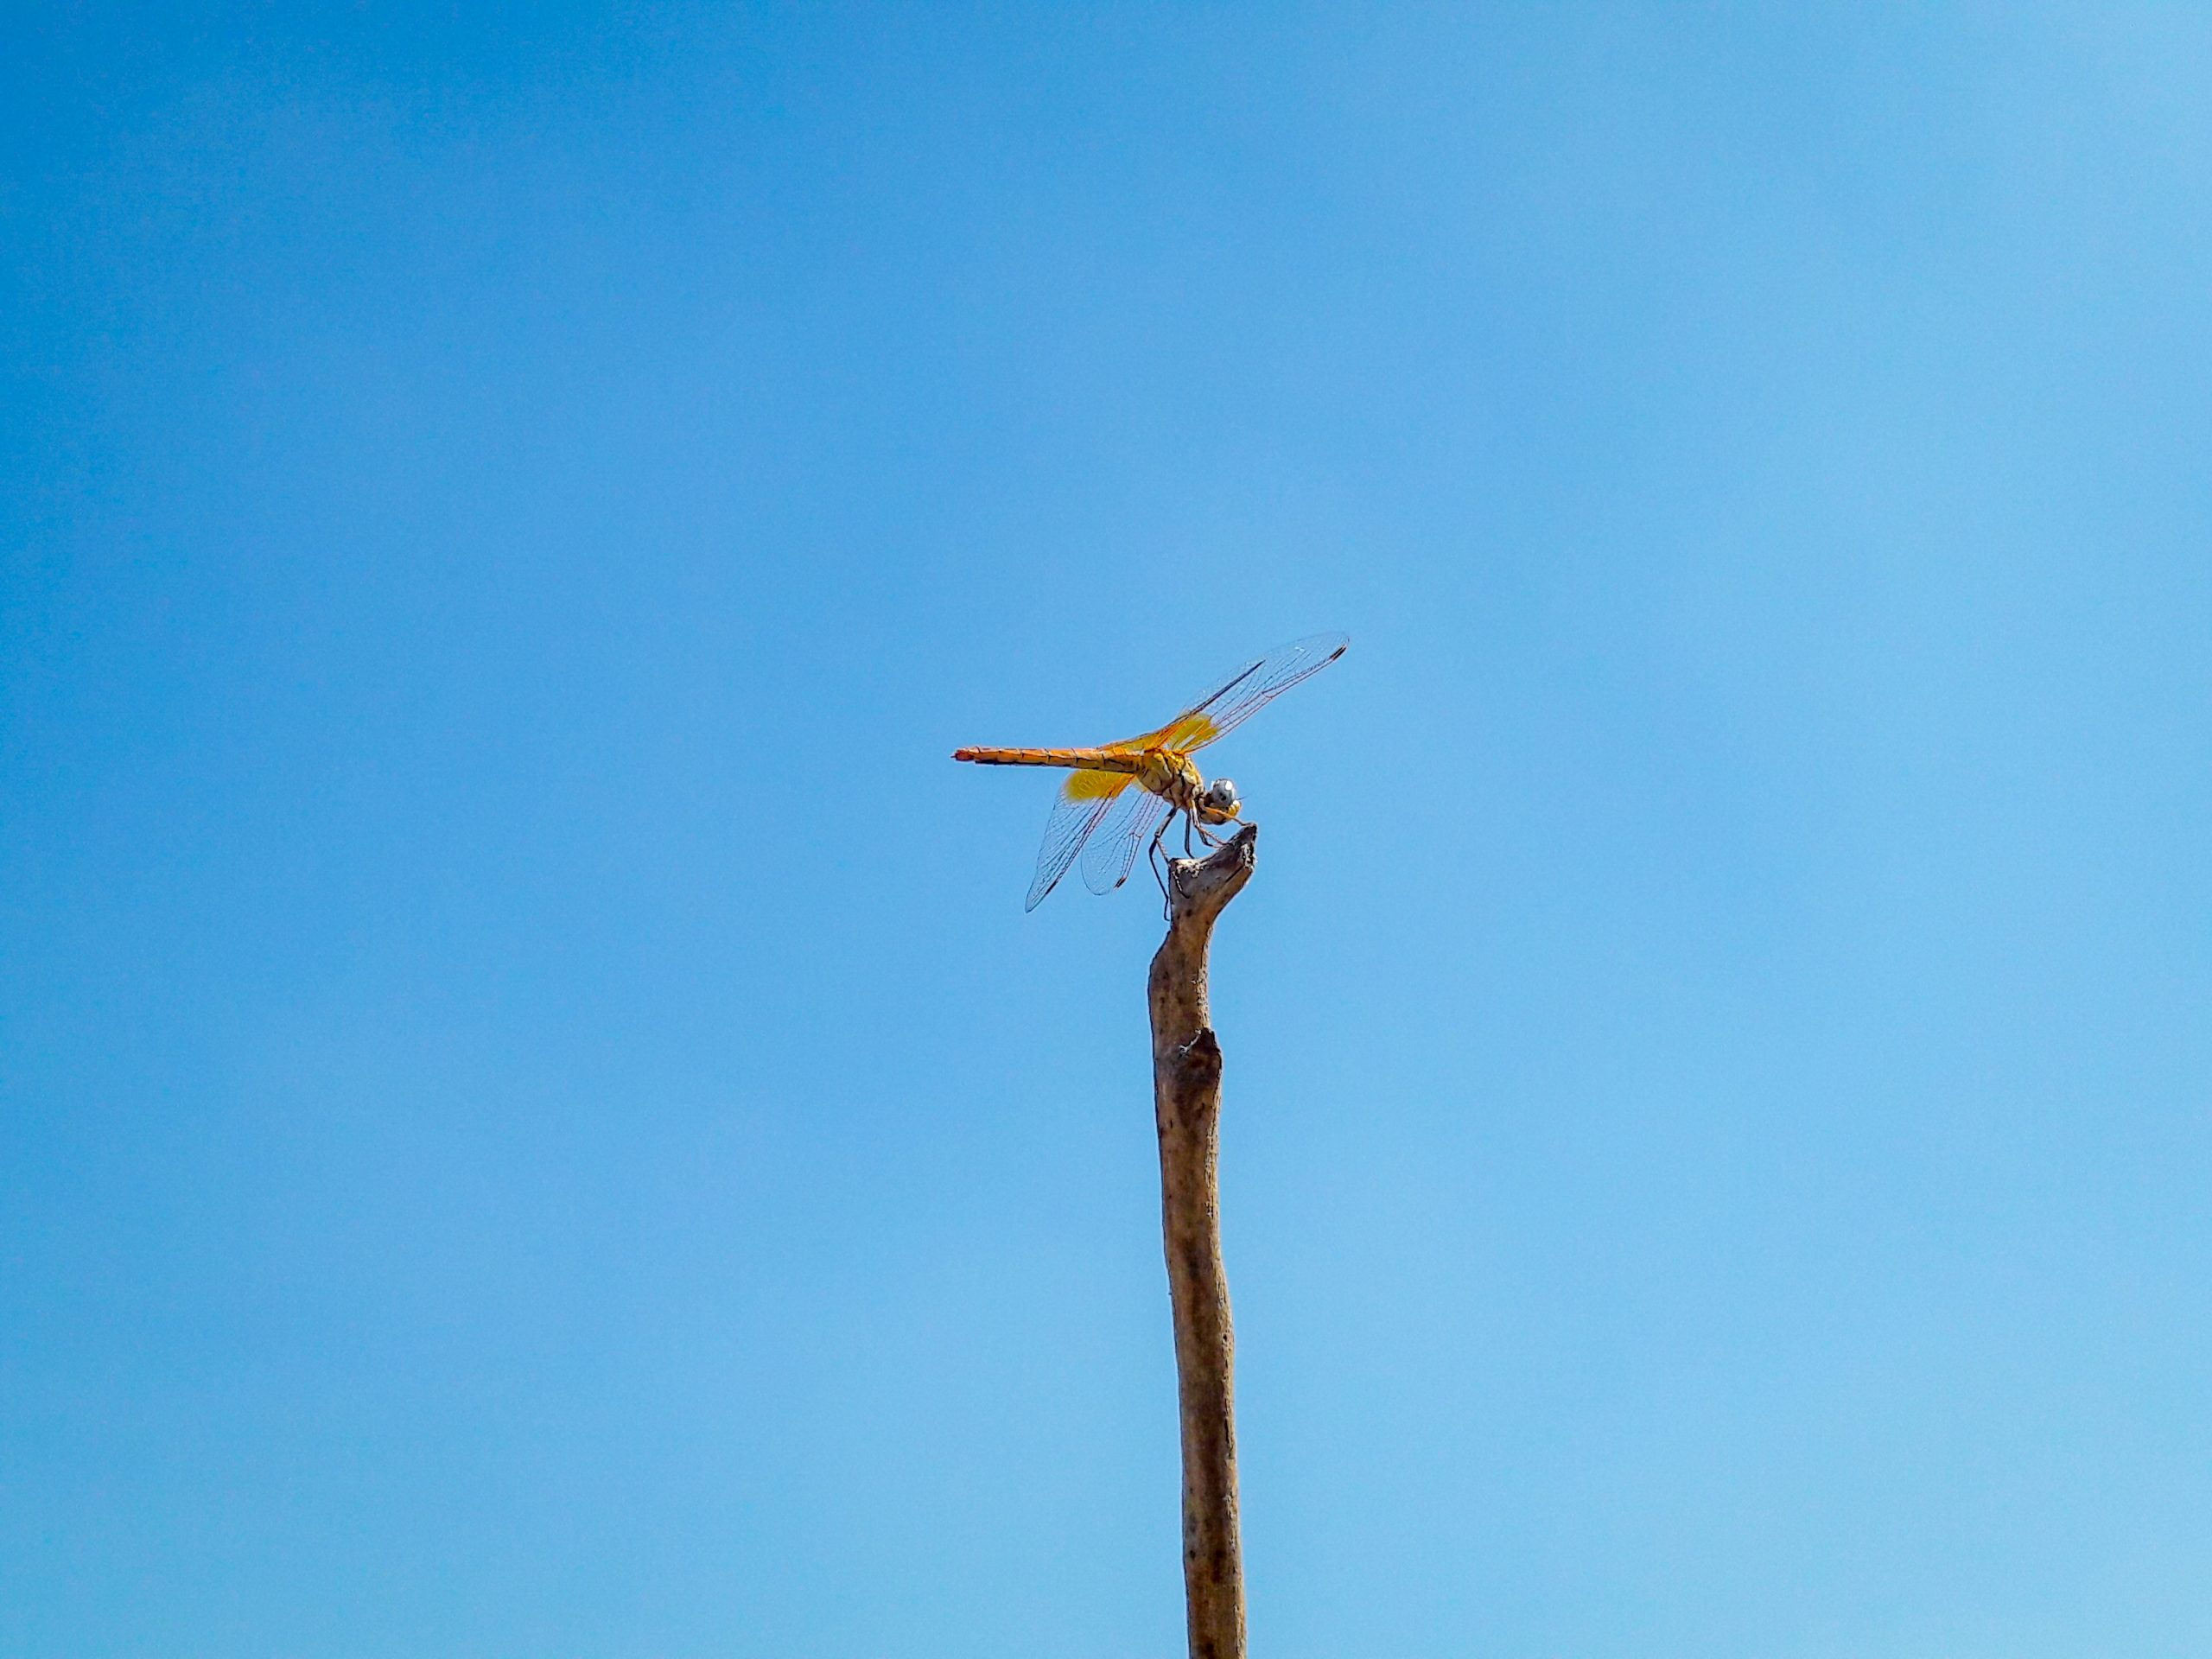 A dragonfly on a twig